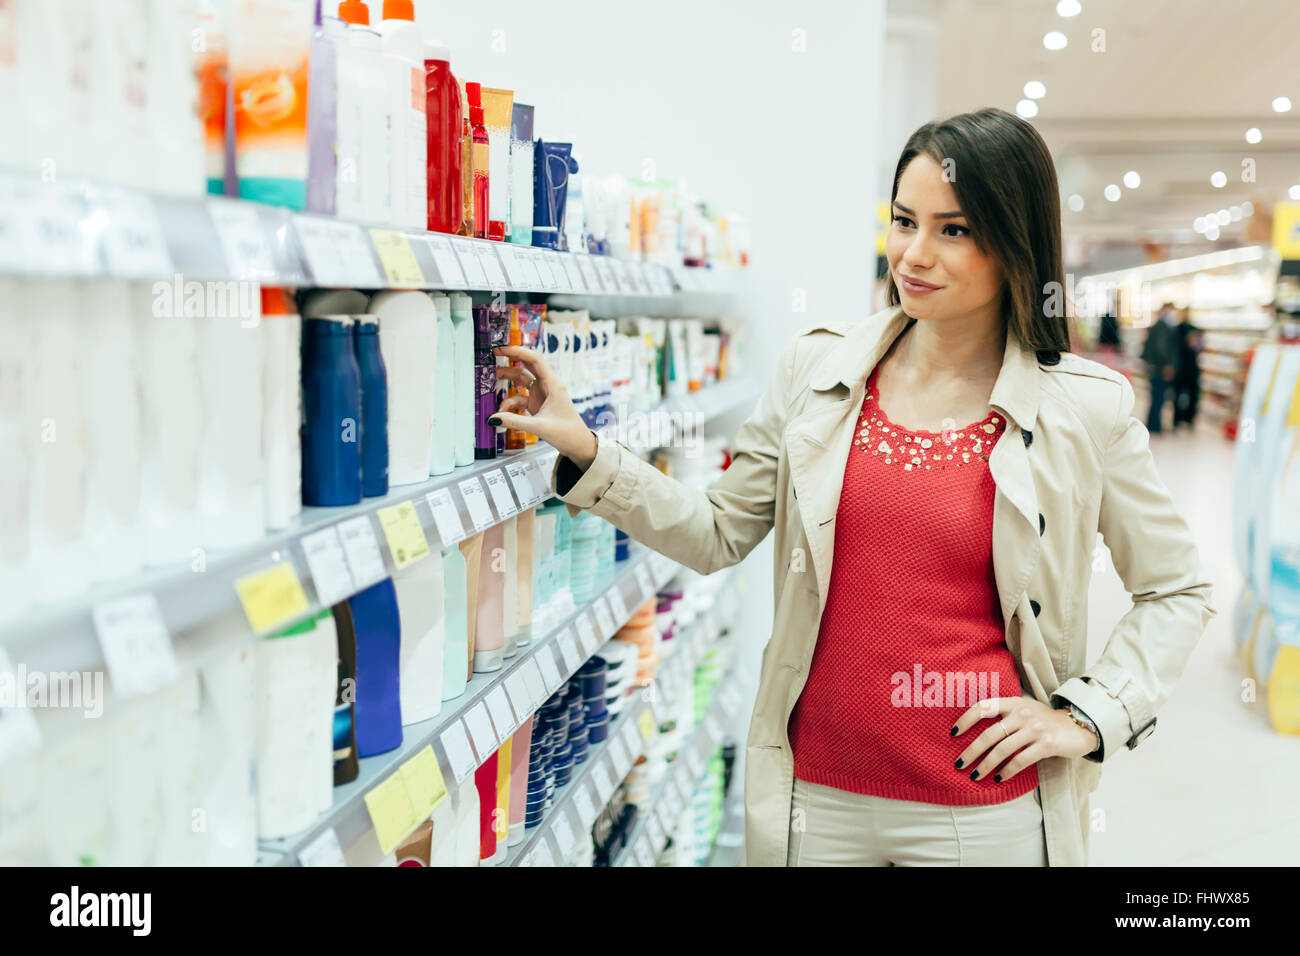 Beautiful woman buying body care products in supermarket - Stock Image